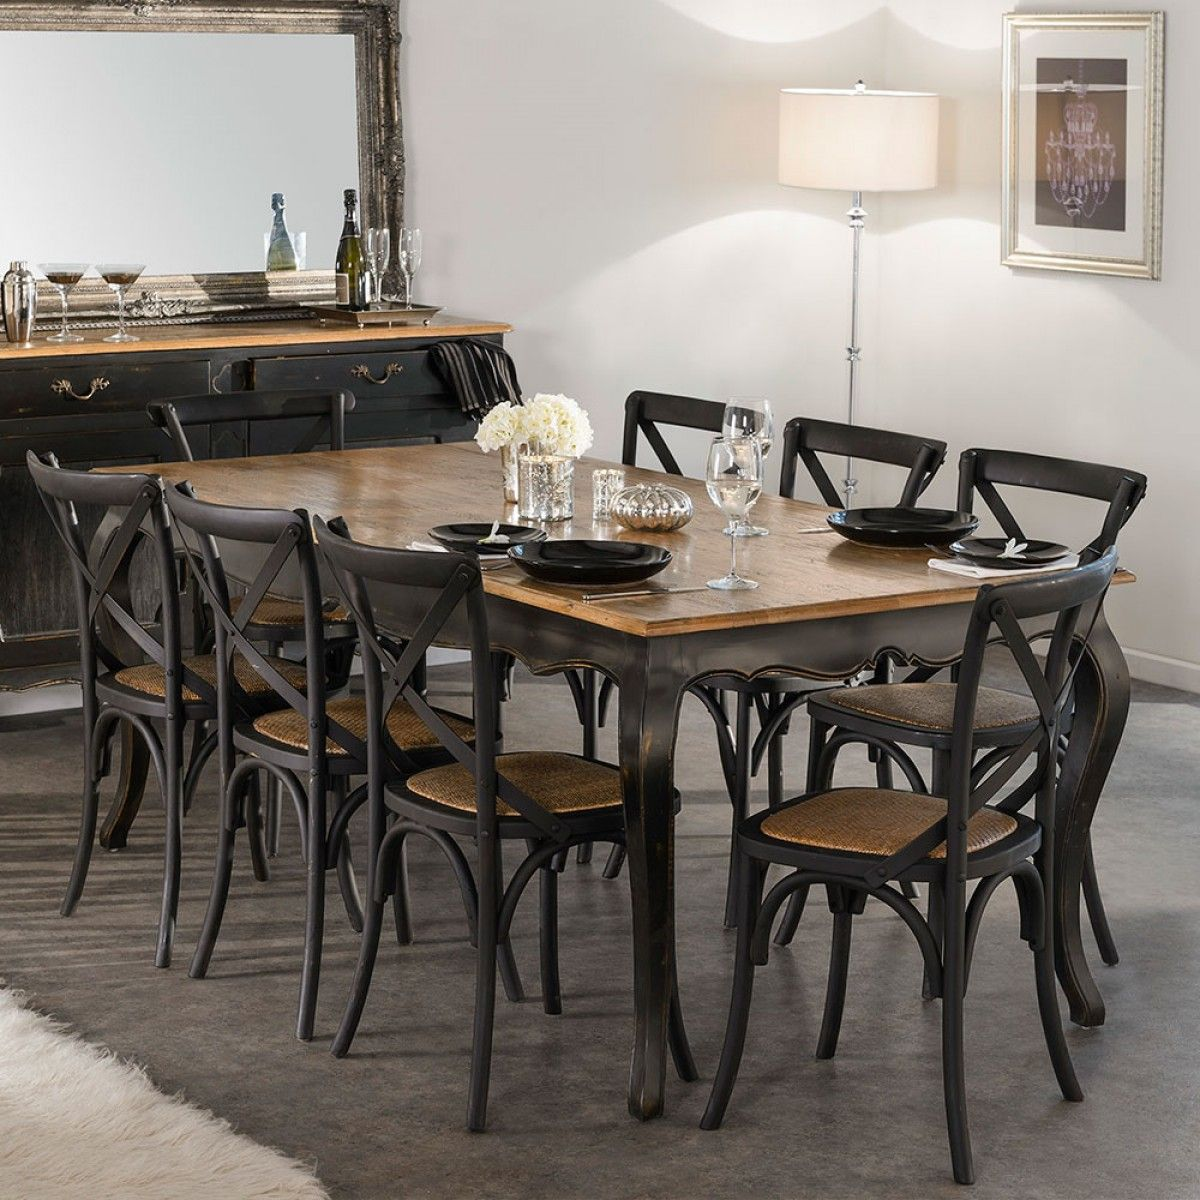 Black Wood Chair With Solid Wood Legs With Fabric Upholstered Seat From Homedotdot 2xh Dark Wood Dining Table Wood Dining Table Decor Black Dining Room Table